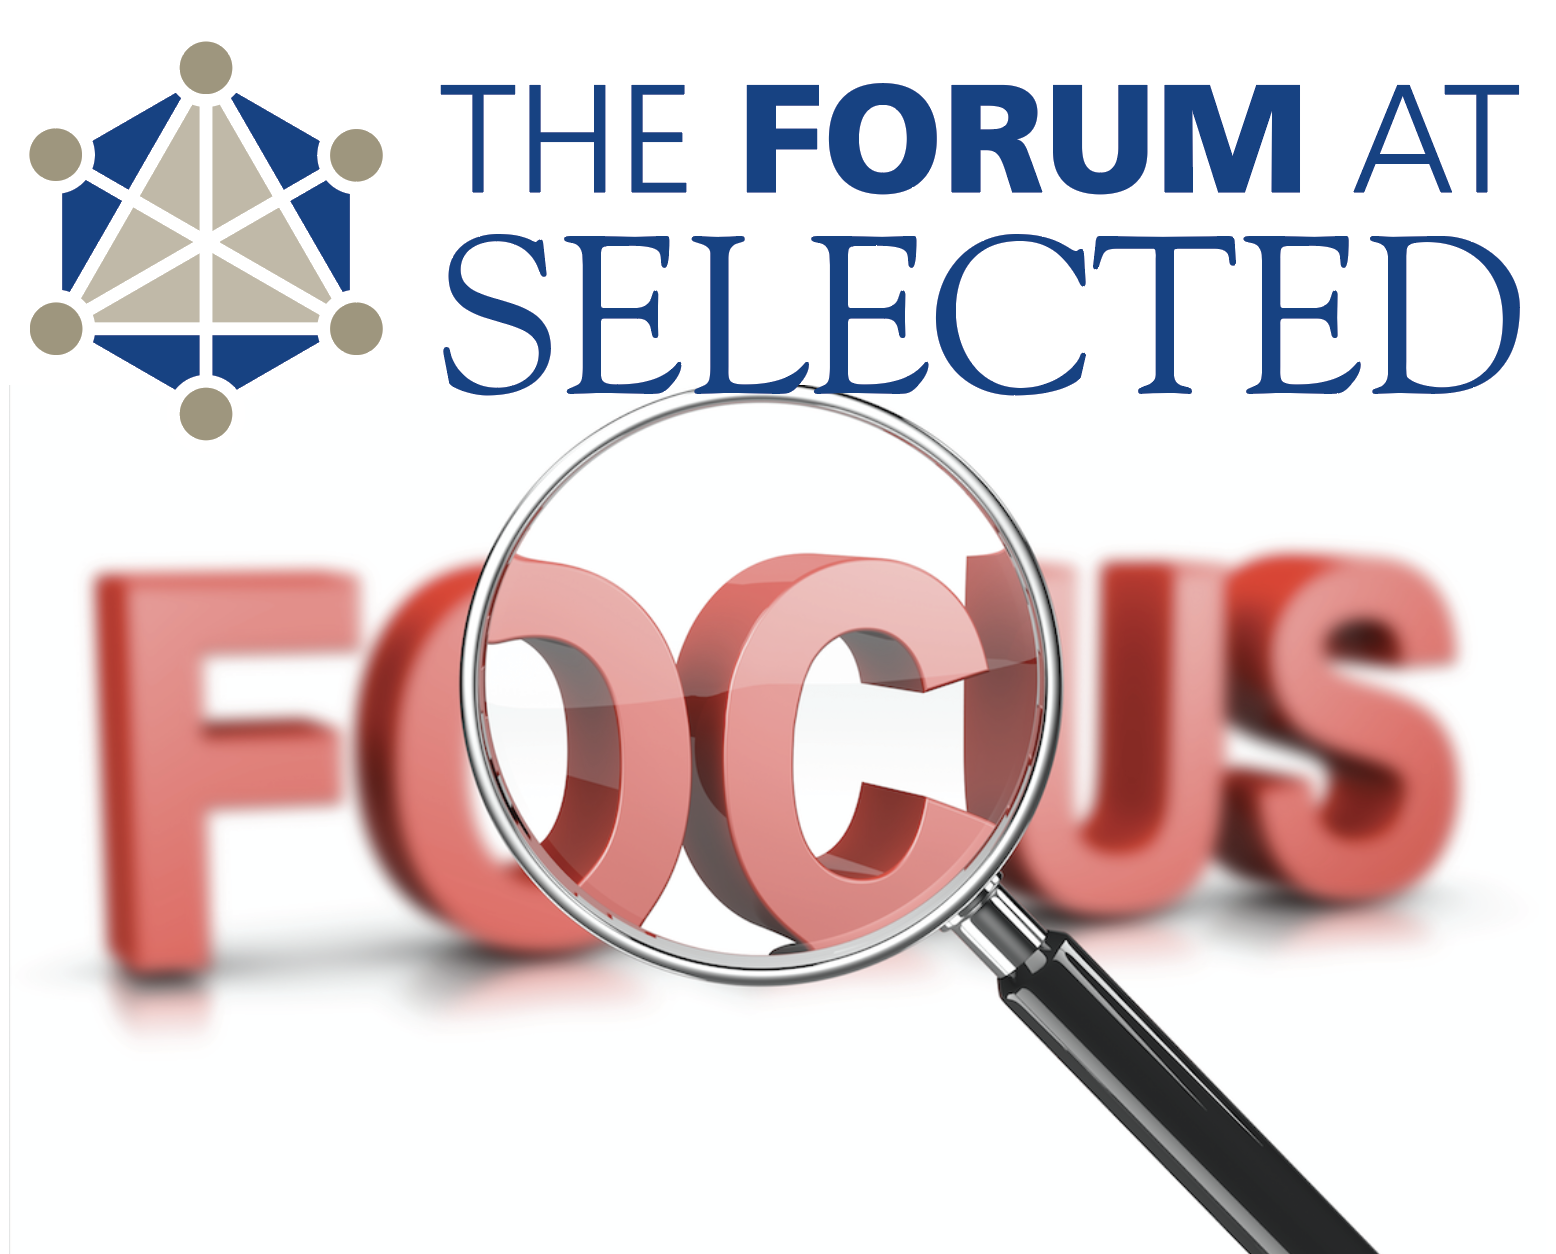 Forum FOCUS: How to Get More Online Reviews and Leverage Family Feedback in Your Marketing